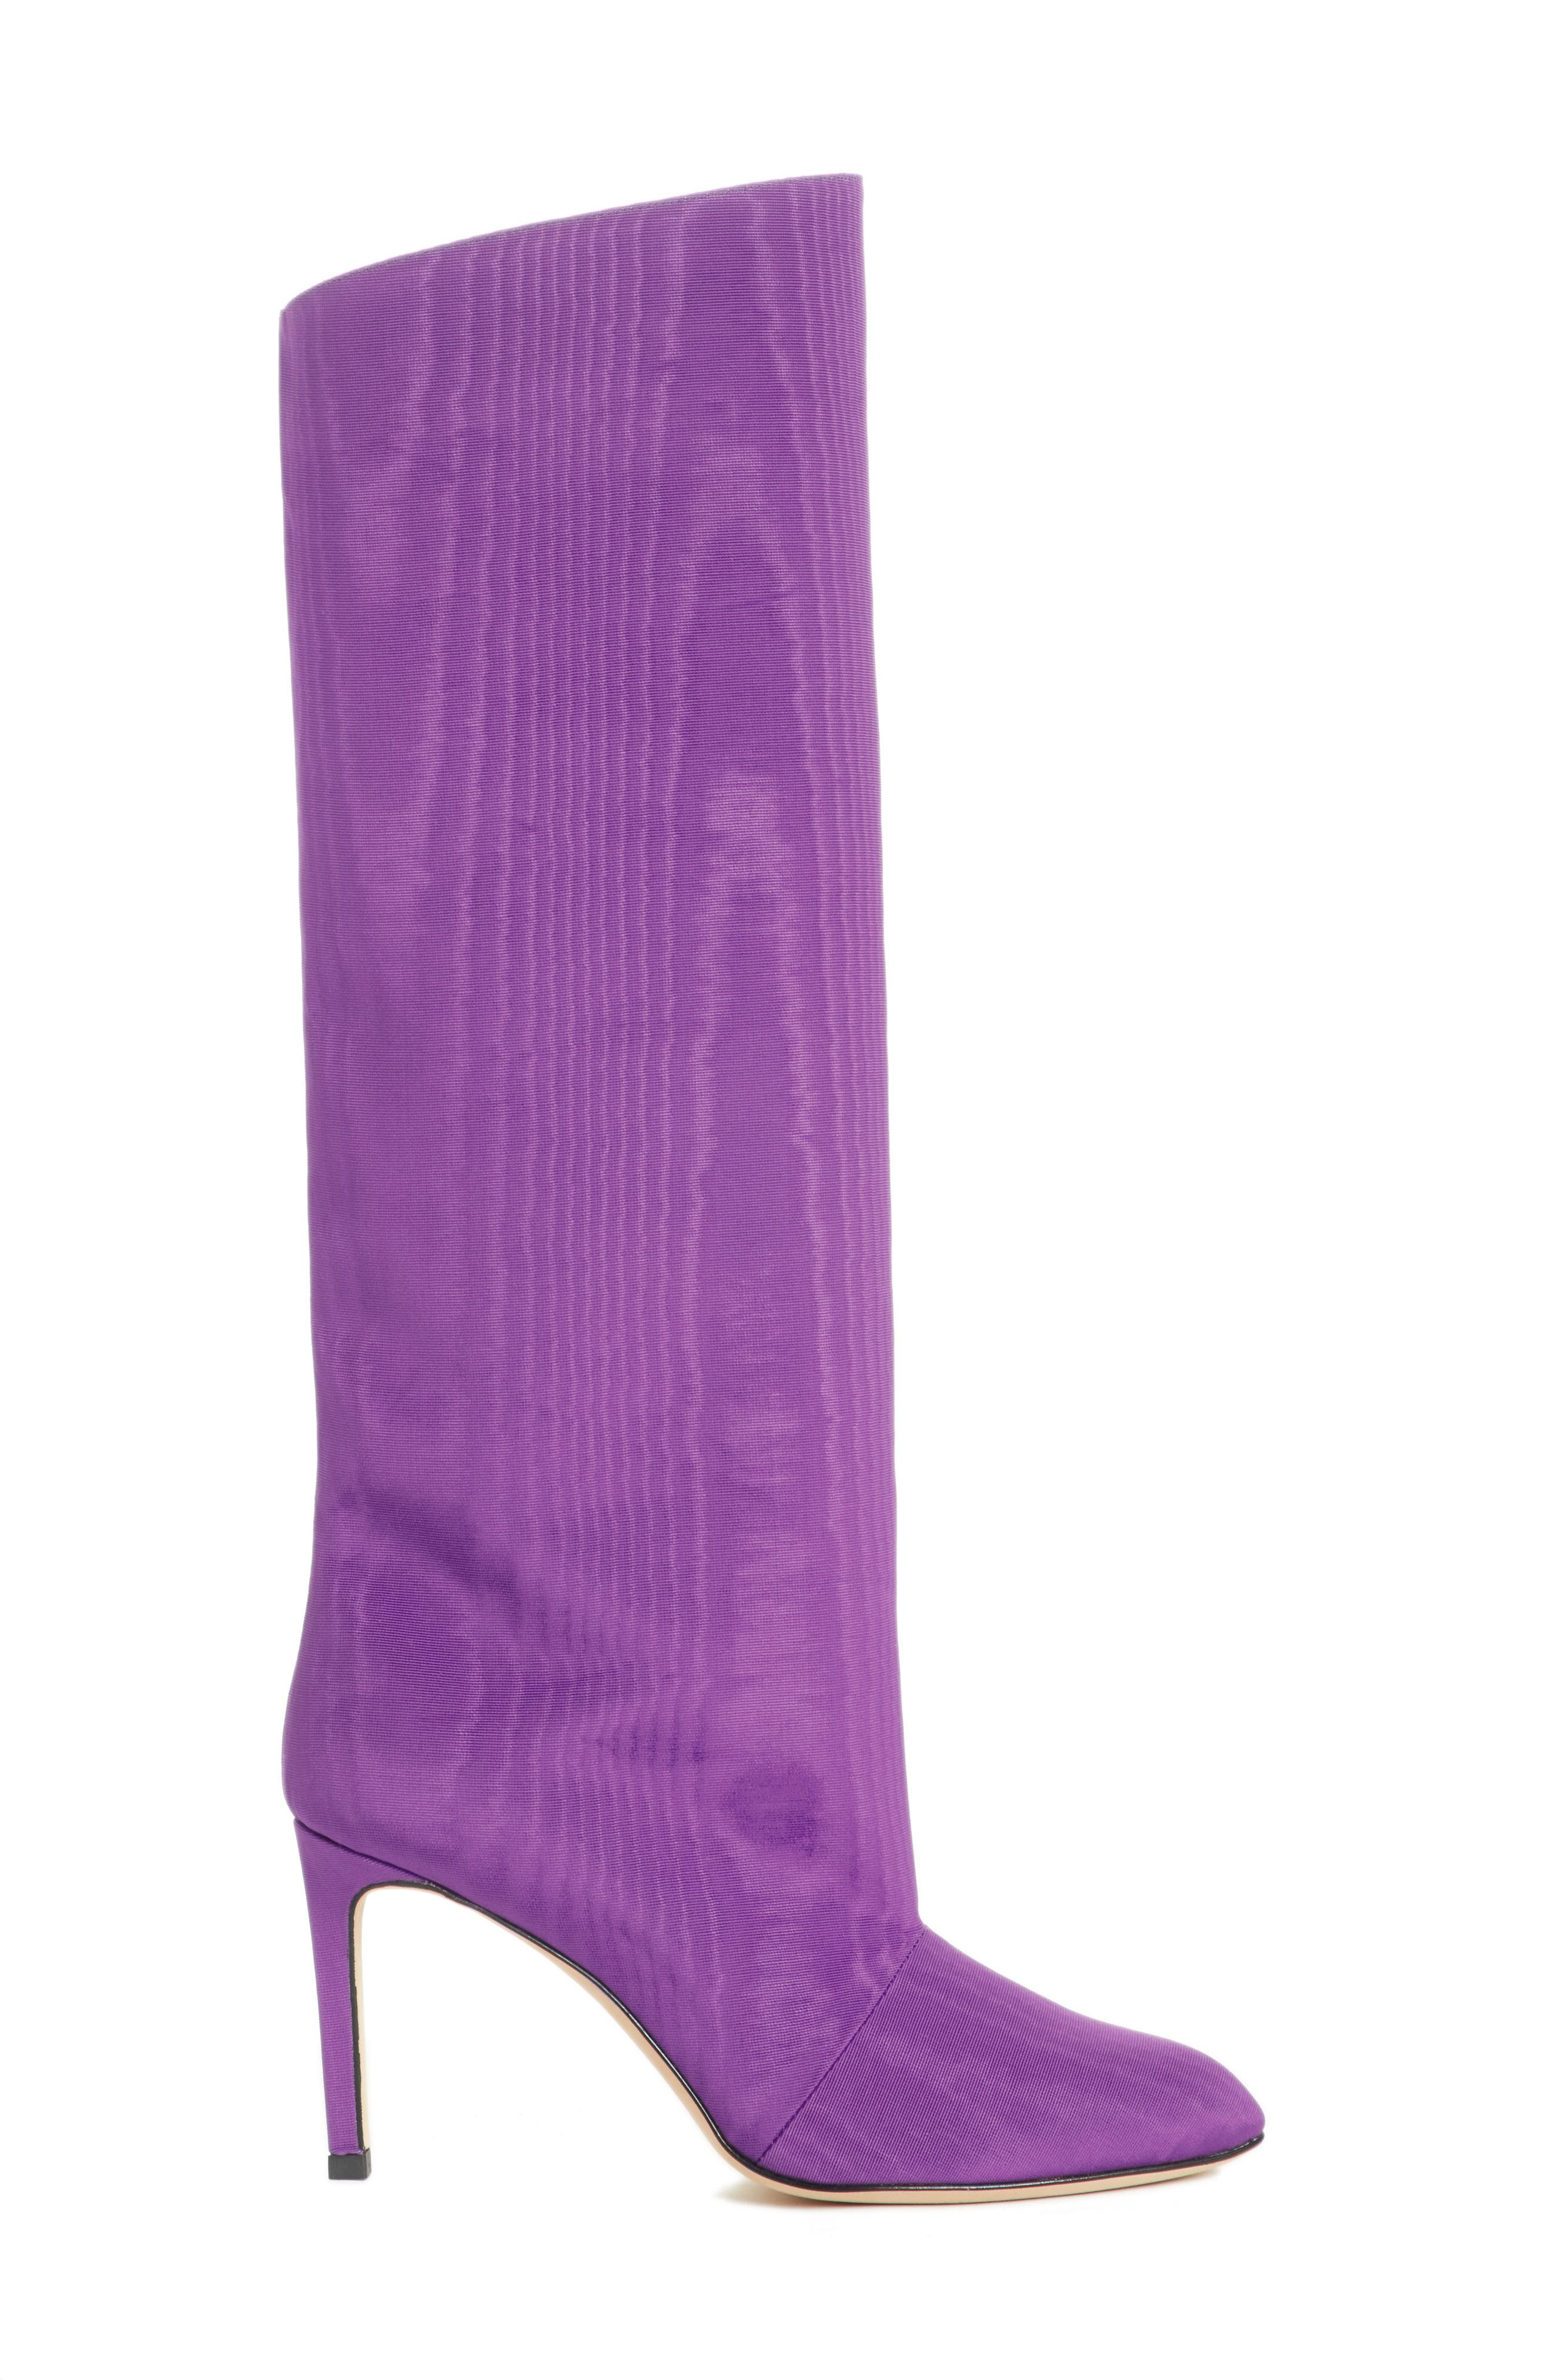 MARSKINRYYPPY,                             Knee High Moiré Boot,                             Alternate thumbnail 3, color,                             500